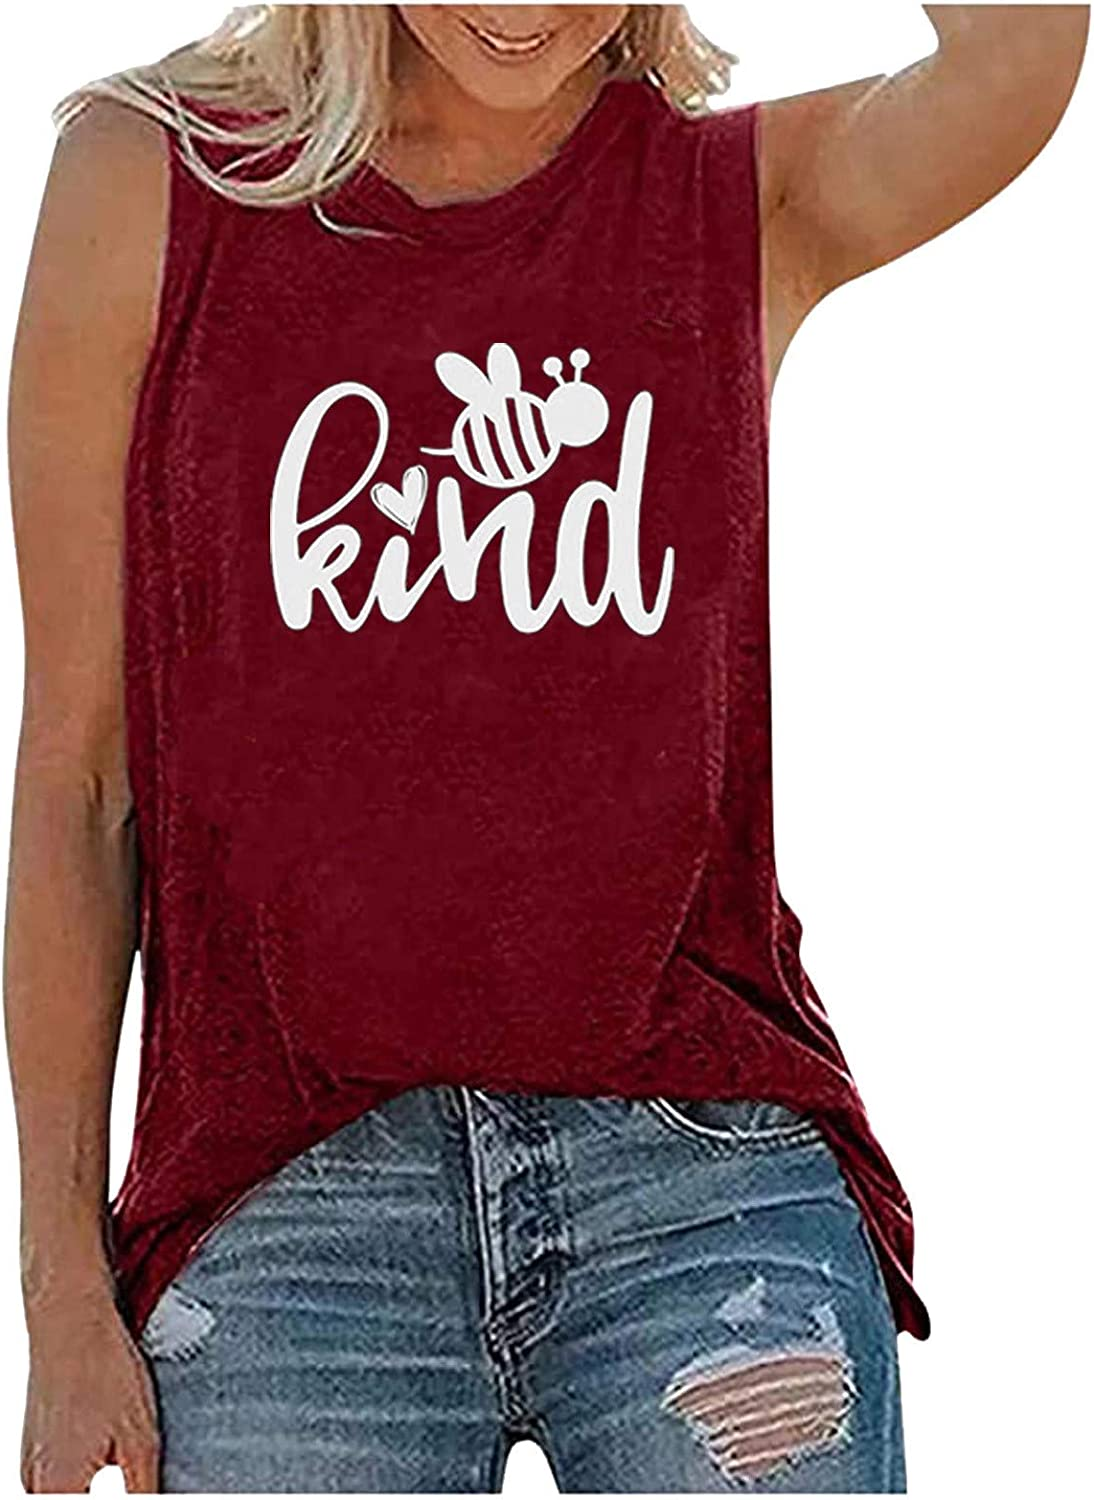 Cute Graphic Cami Tank Tops for Women Bee Kind Shirts O Neck Sleeveless Loose Fit Vest Tops